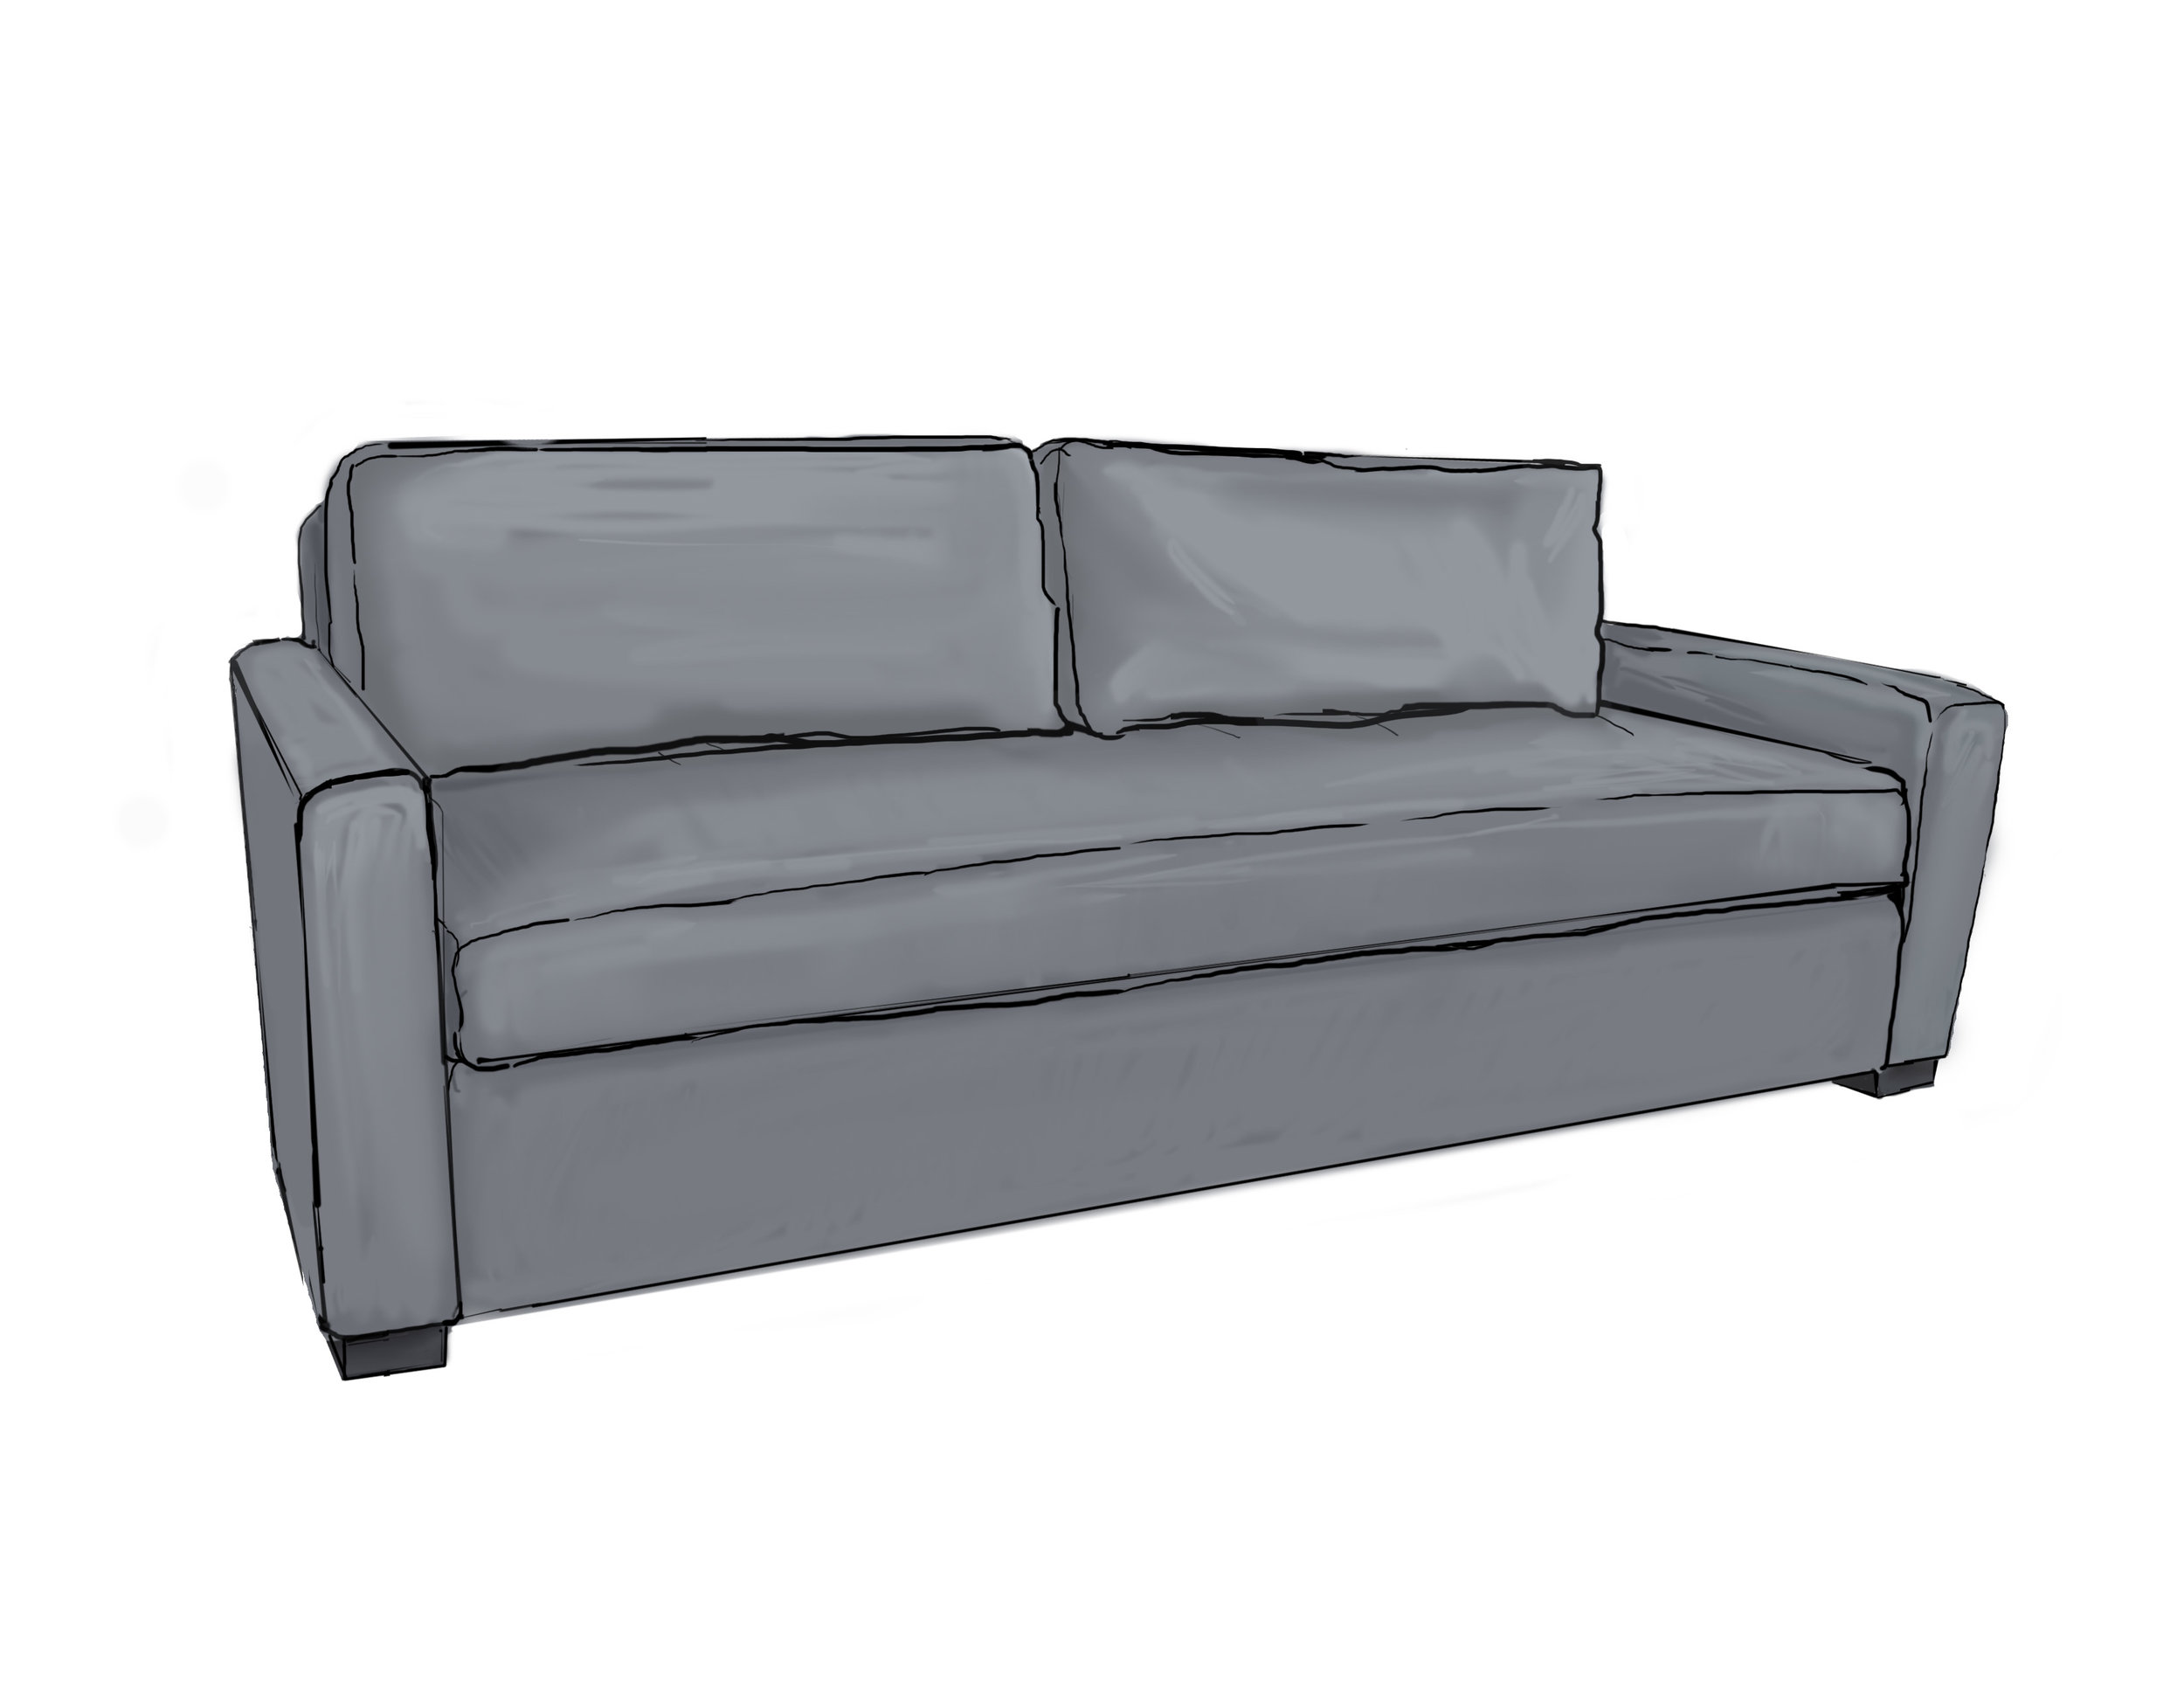 Tribeca Sofa 585-1 2-cushions .jpg